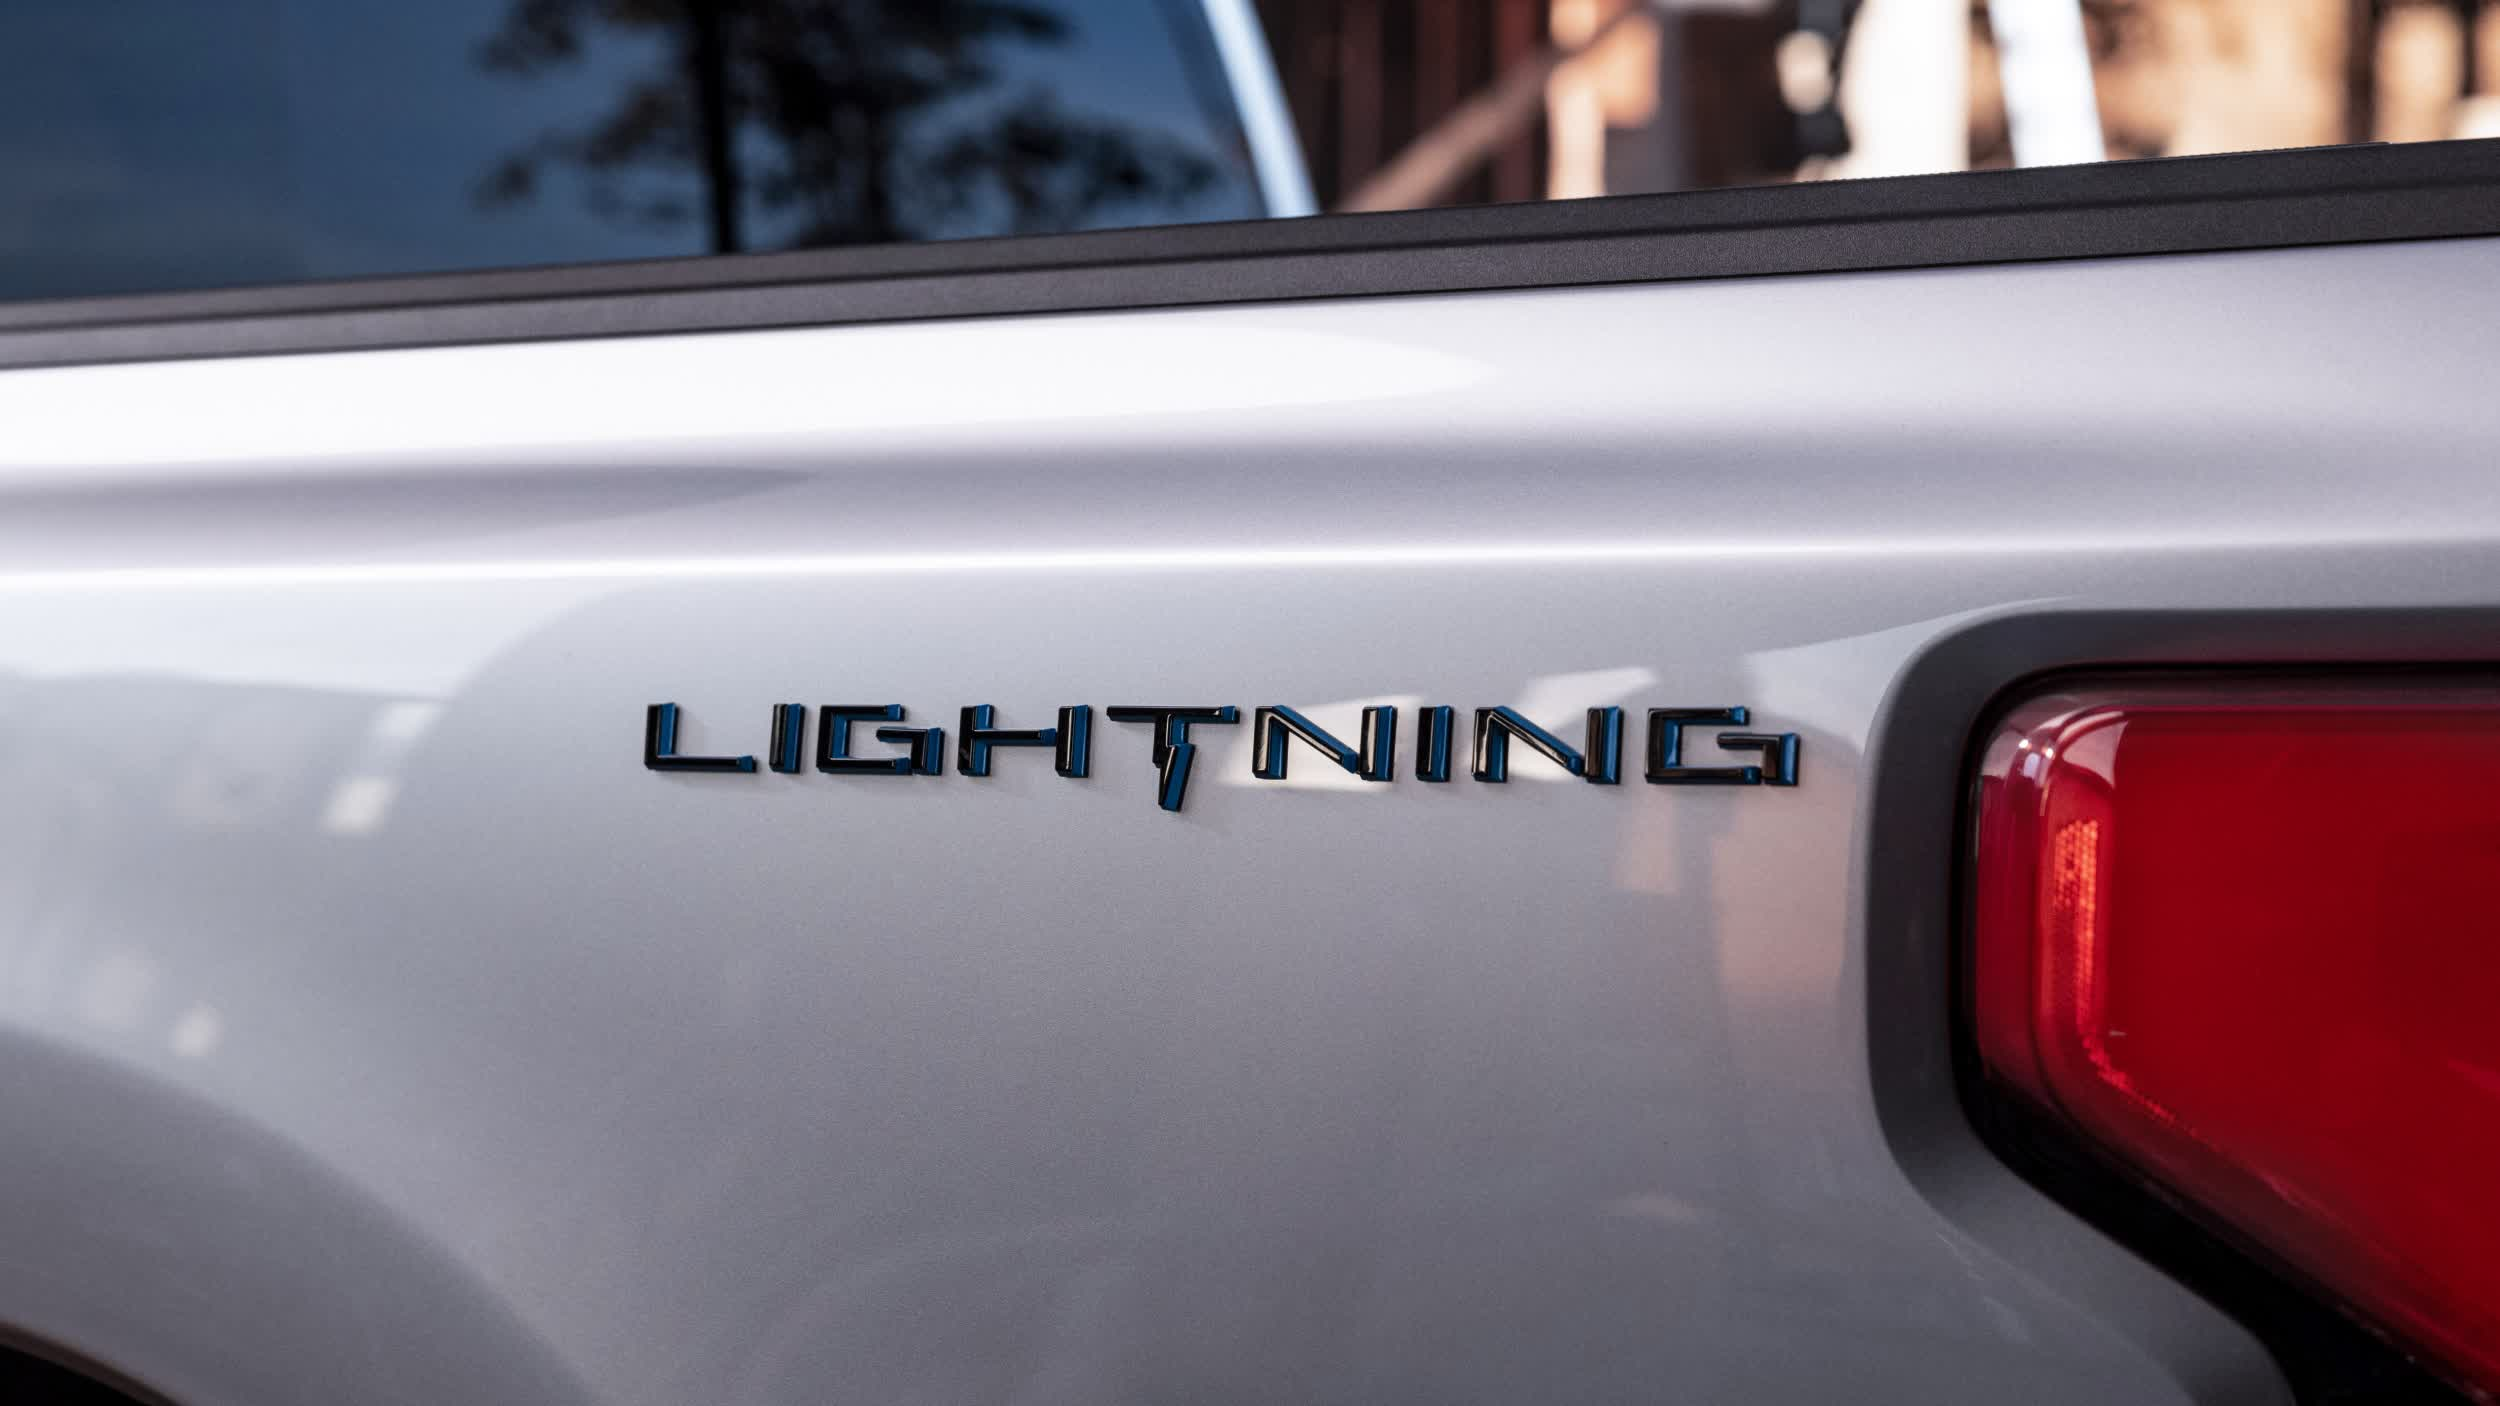 Ford is bringing back the F-150 Lightning as an all-electric pickup